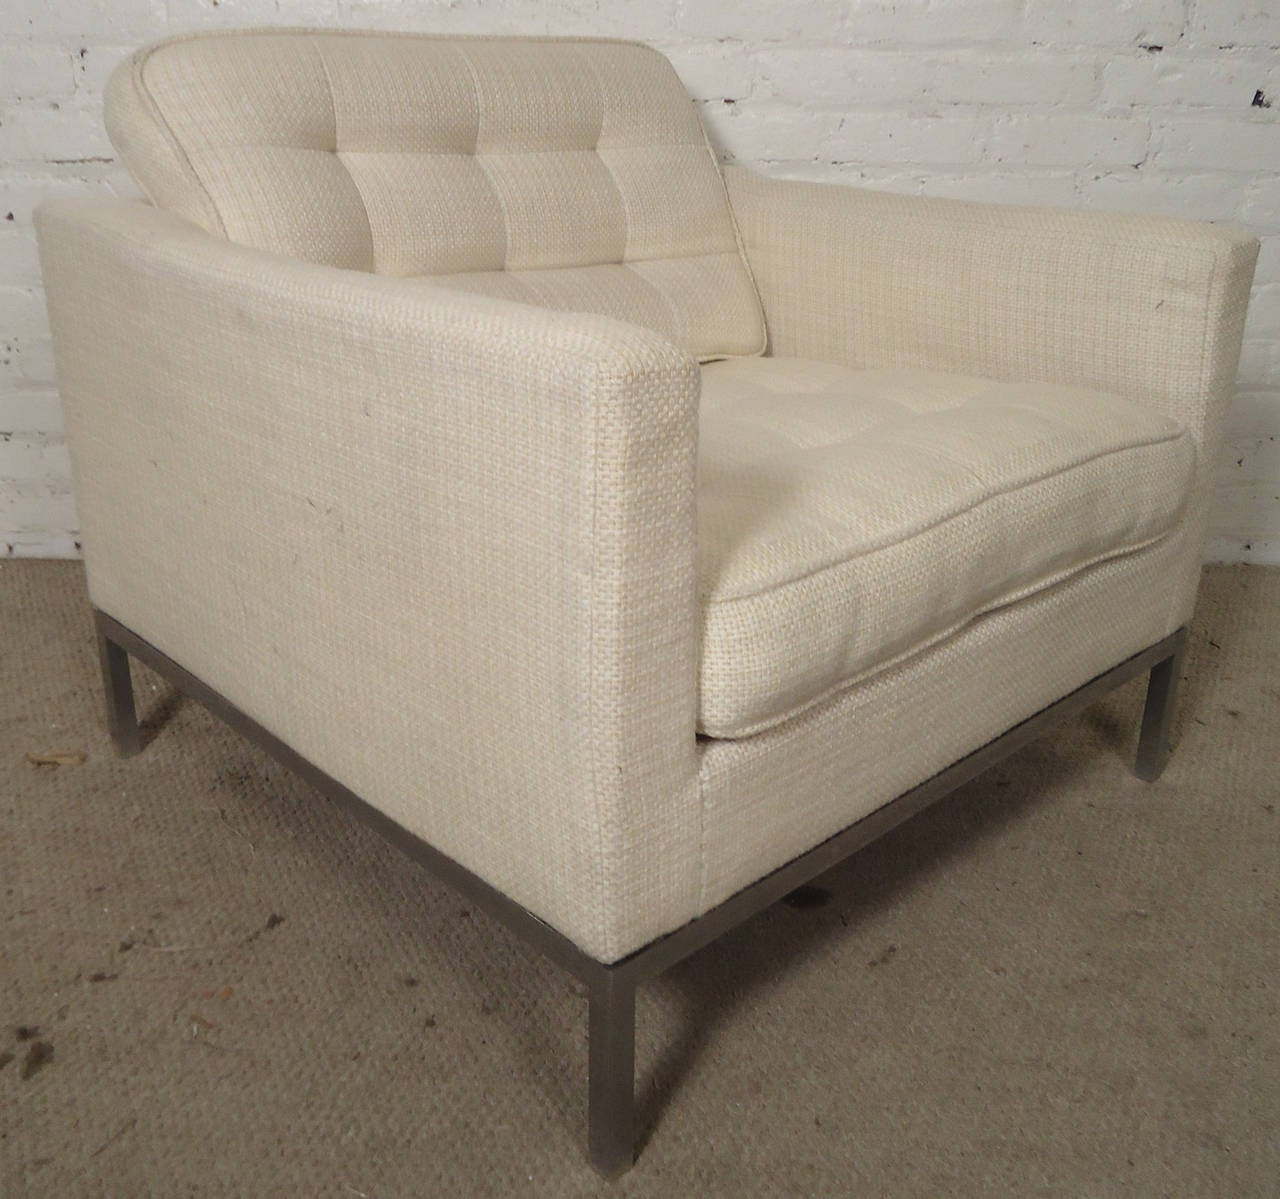 Mid-20th Century Mid-Century Pair of Upholstered Armchairs by Knoll Associates For Sale